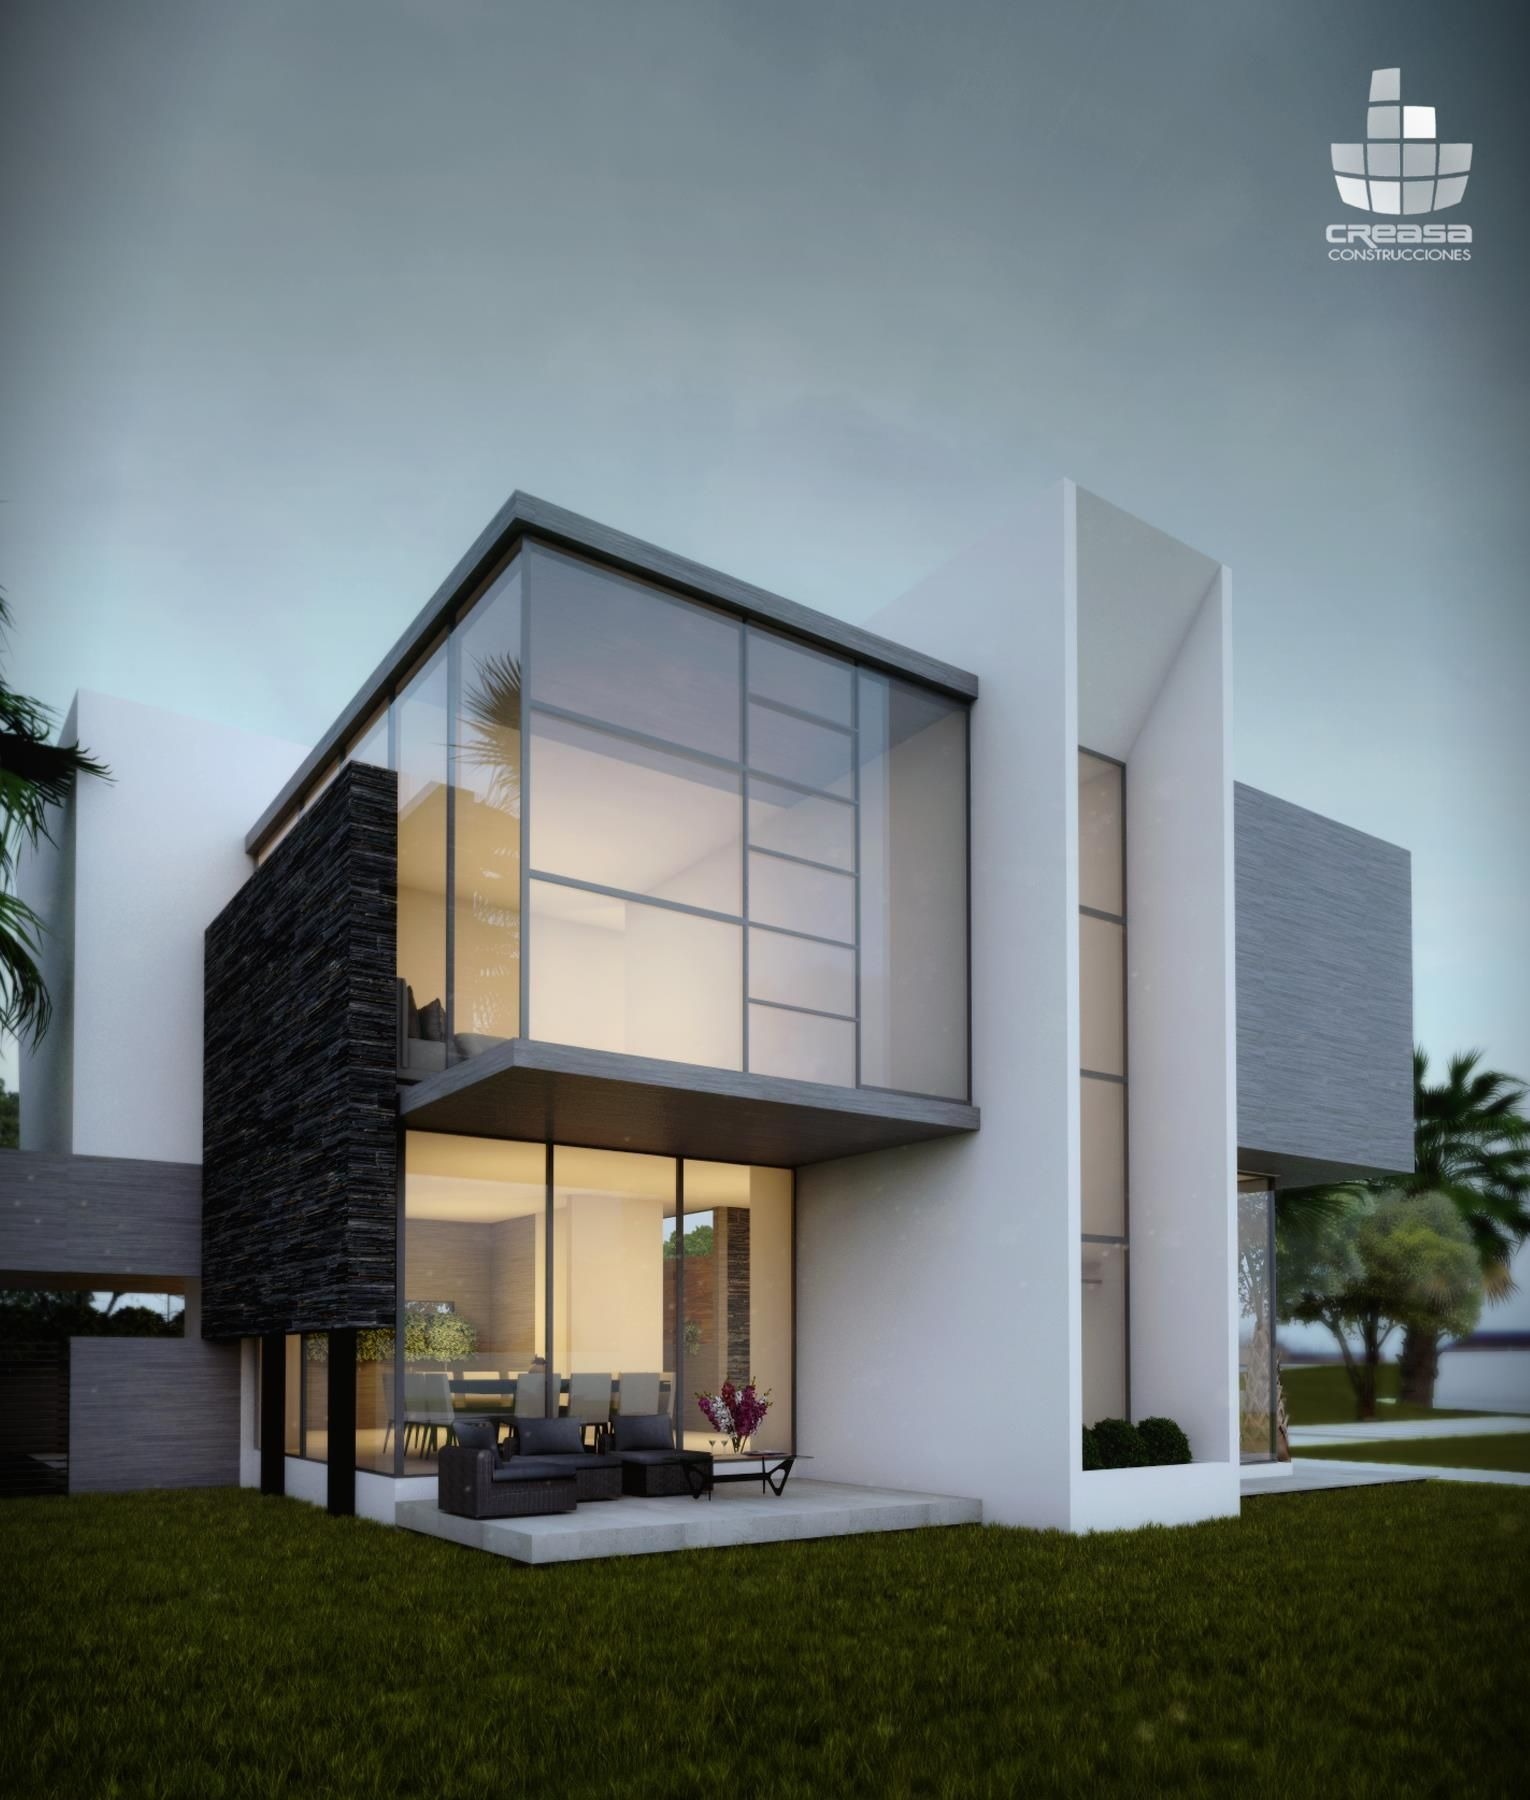 Creasa modern architecture pinterest villas house for Architecture design of house